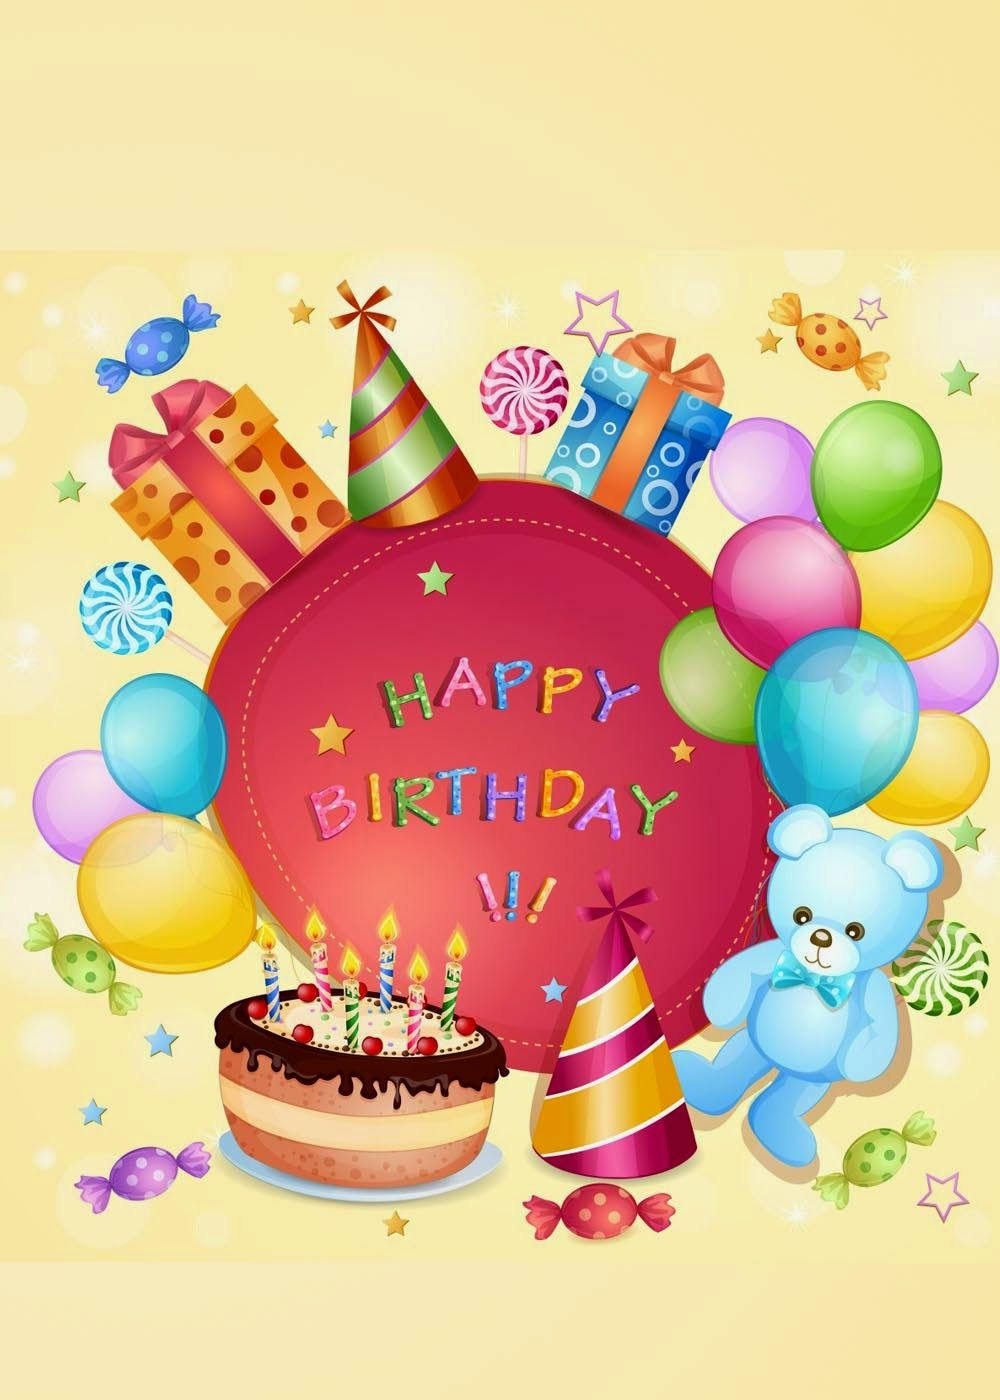 Happy Birthday Greetings Cards Happy Birthday Greetings Images Happy